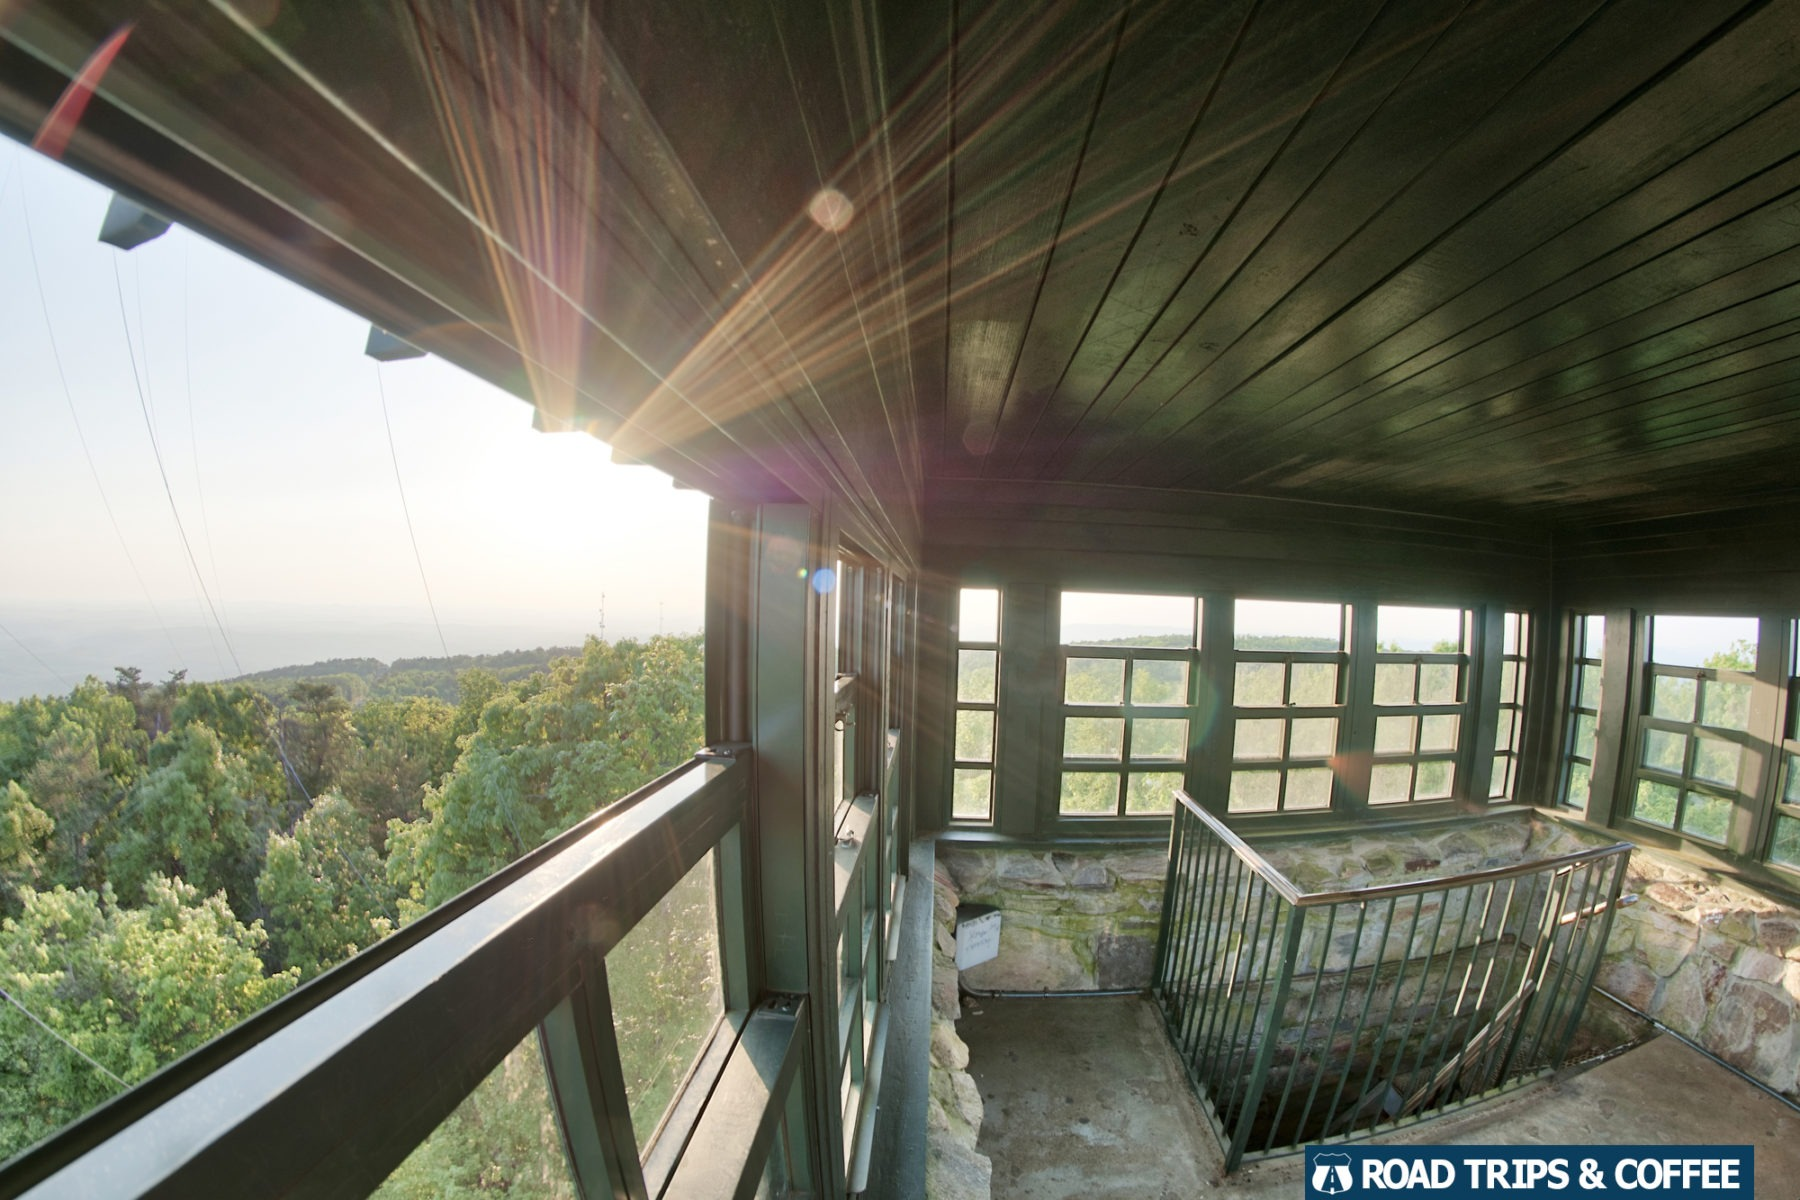 The setting sun flares through the large open windows of the Observation Tower at the top of Cheaha State Park in Alabama.